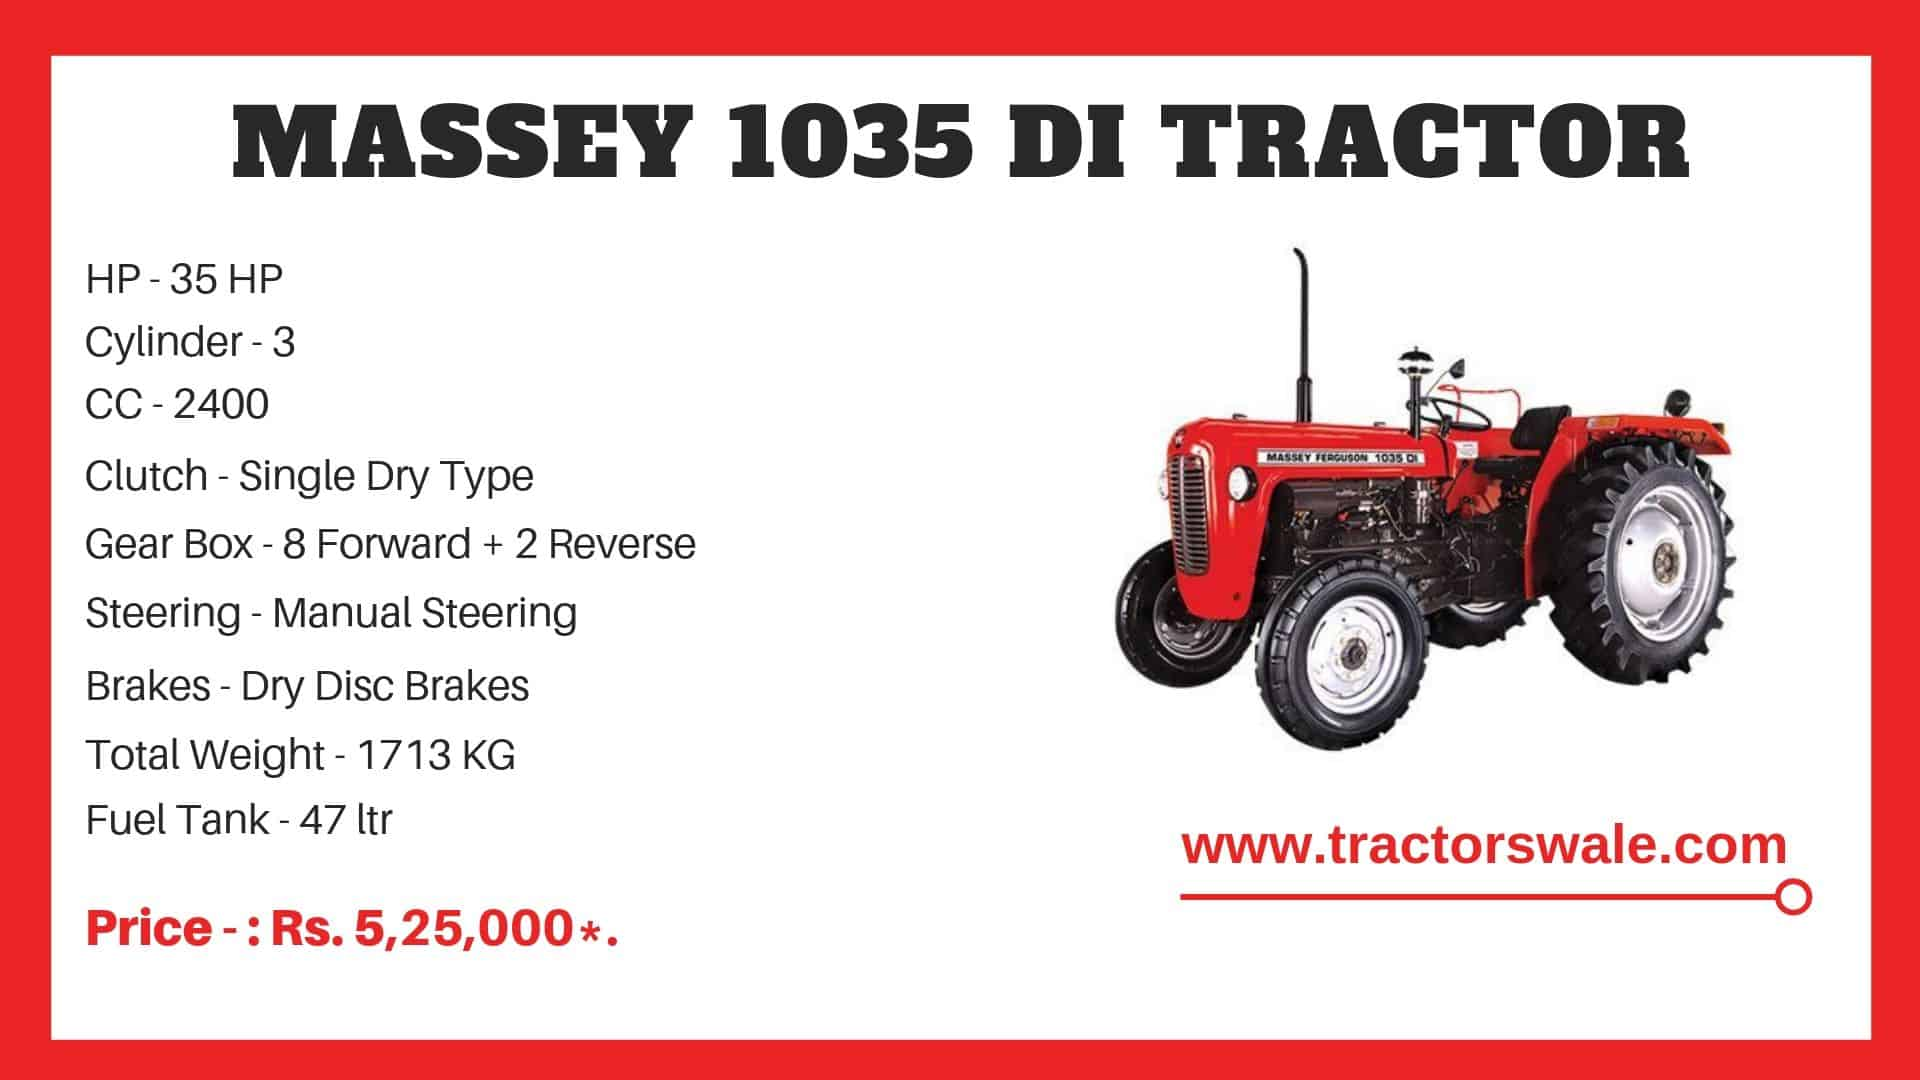 Massey Ferguson 1035 di Specifications